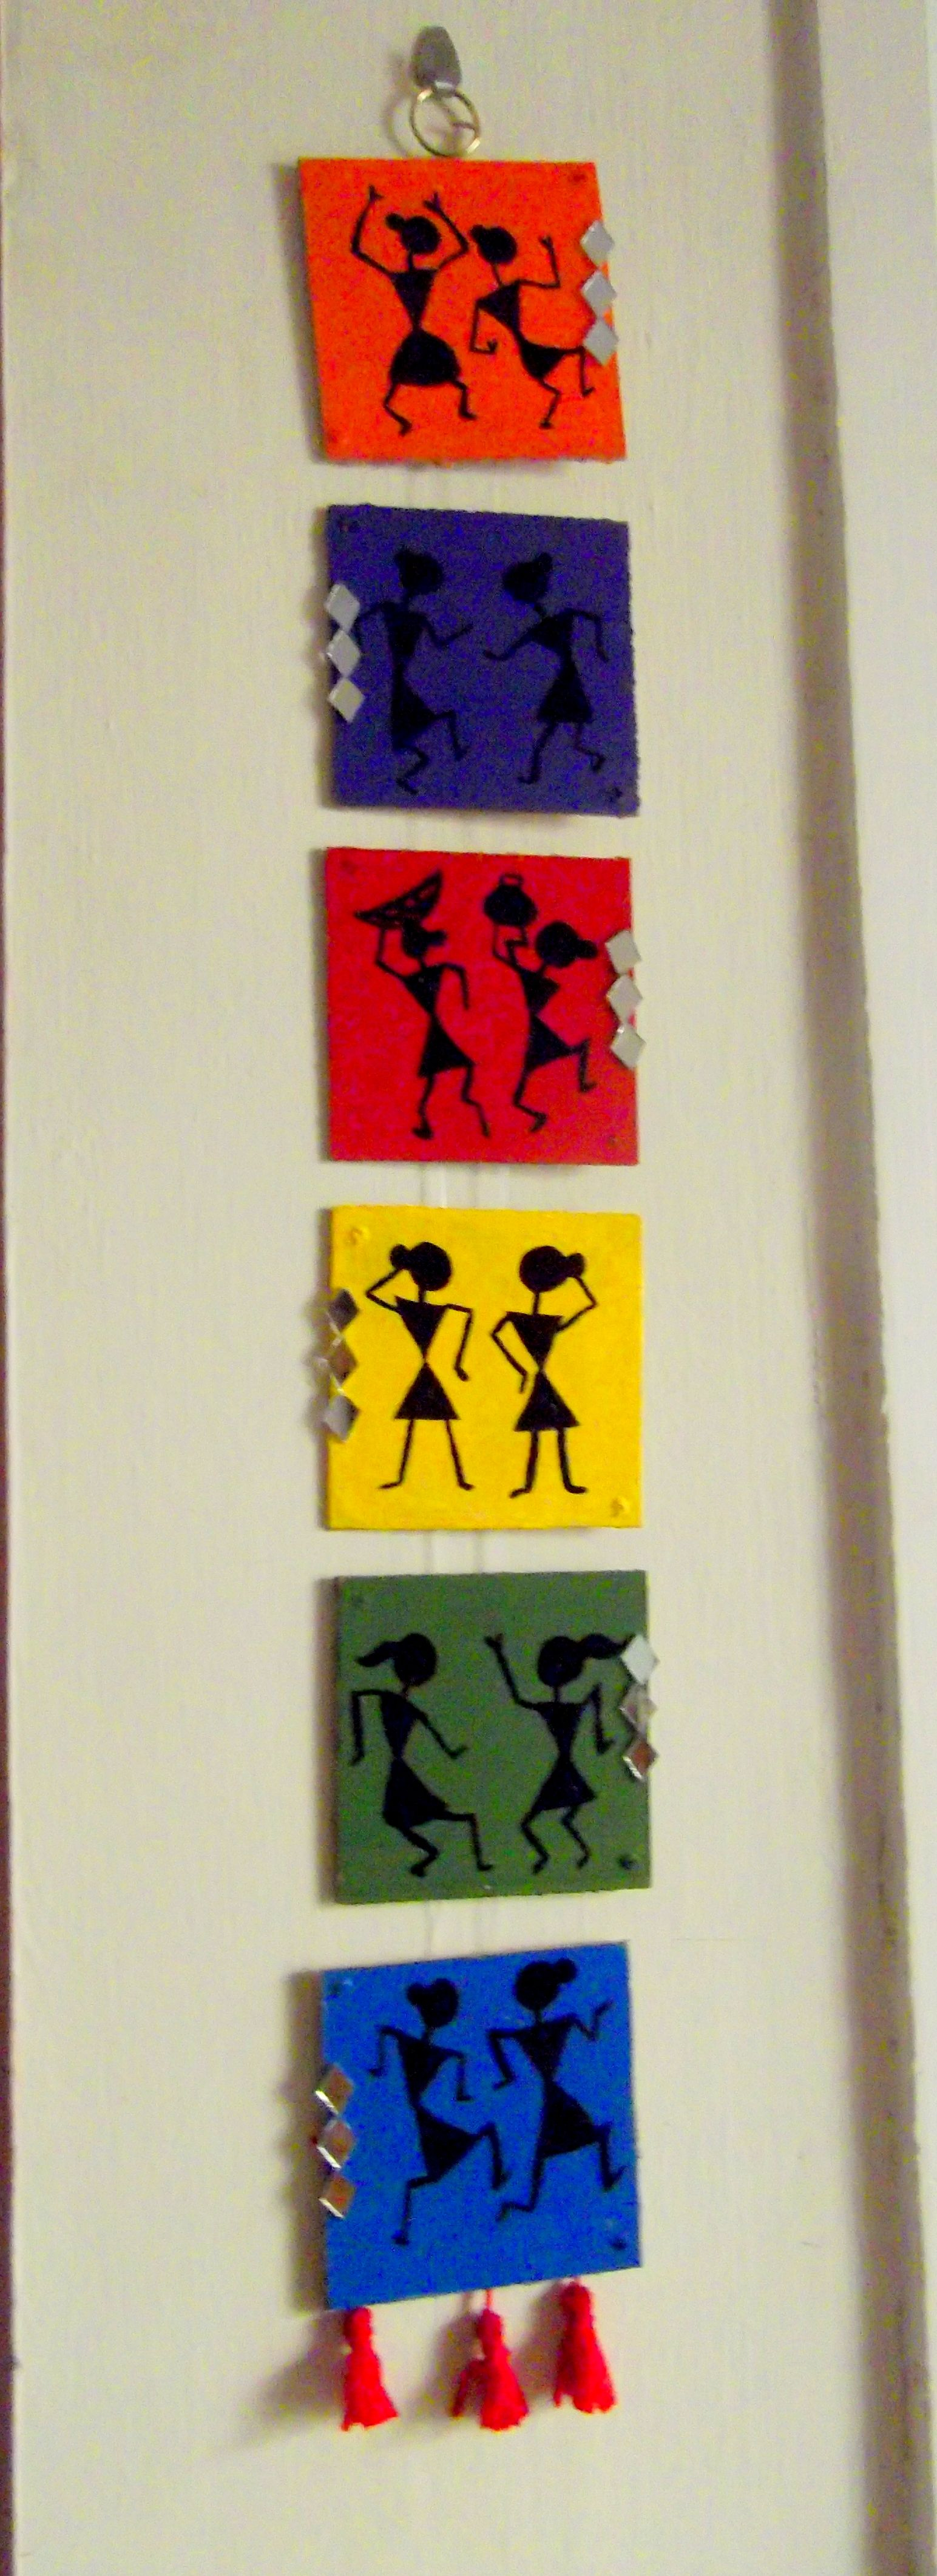 Warli Wall Hanging Diy Projects To Try Hanging Wall Art Worli